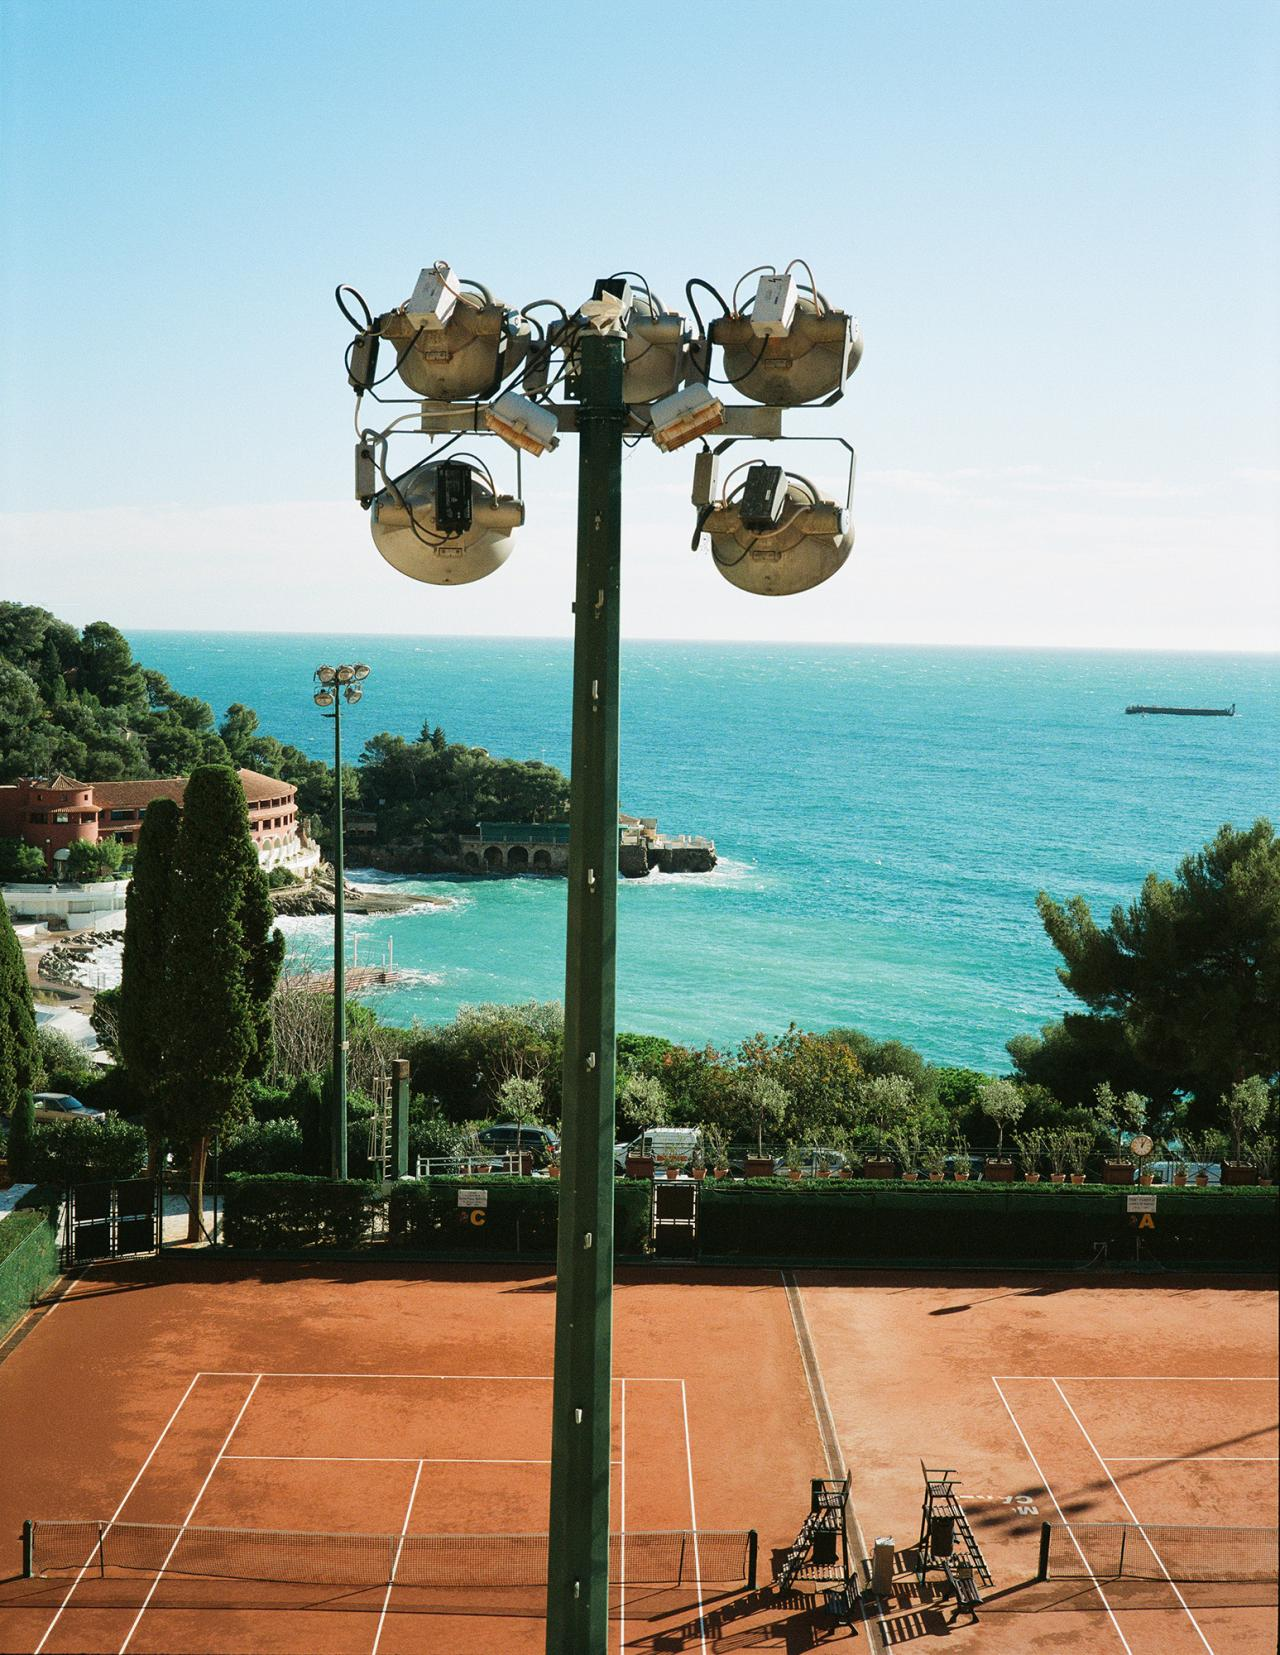 Monte Carlo Country Club, Monaco, 2019